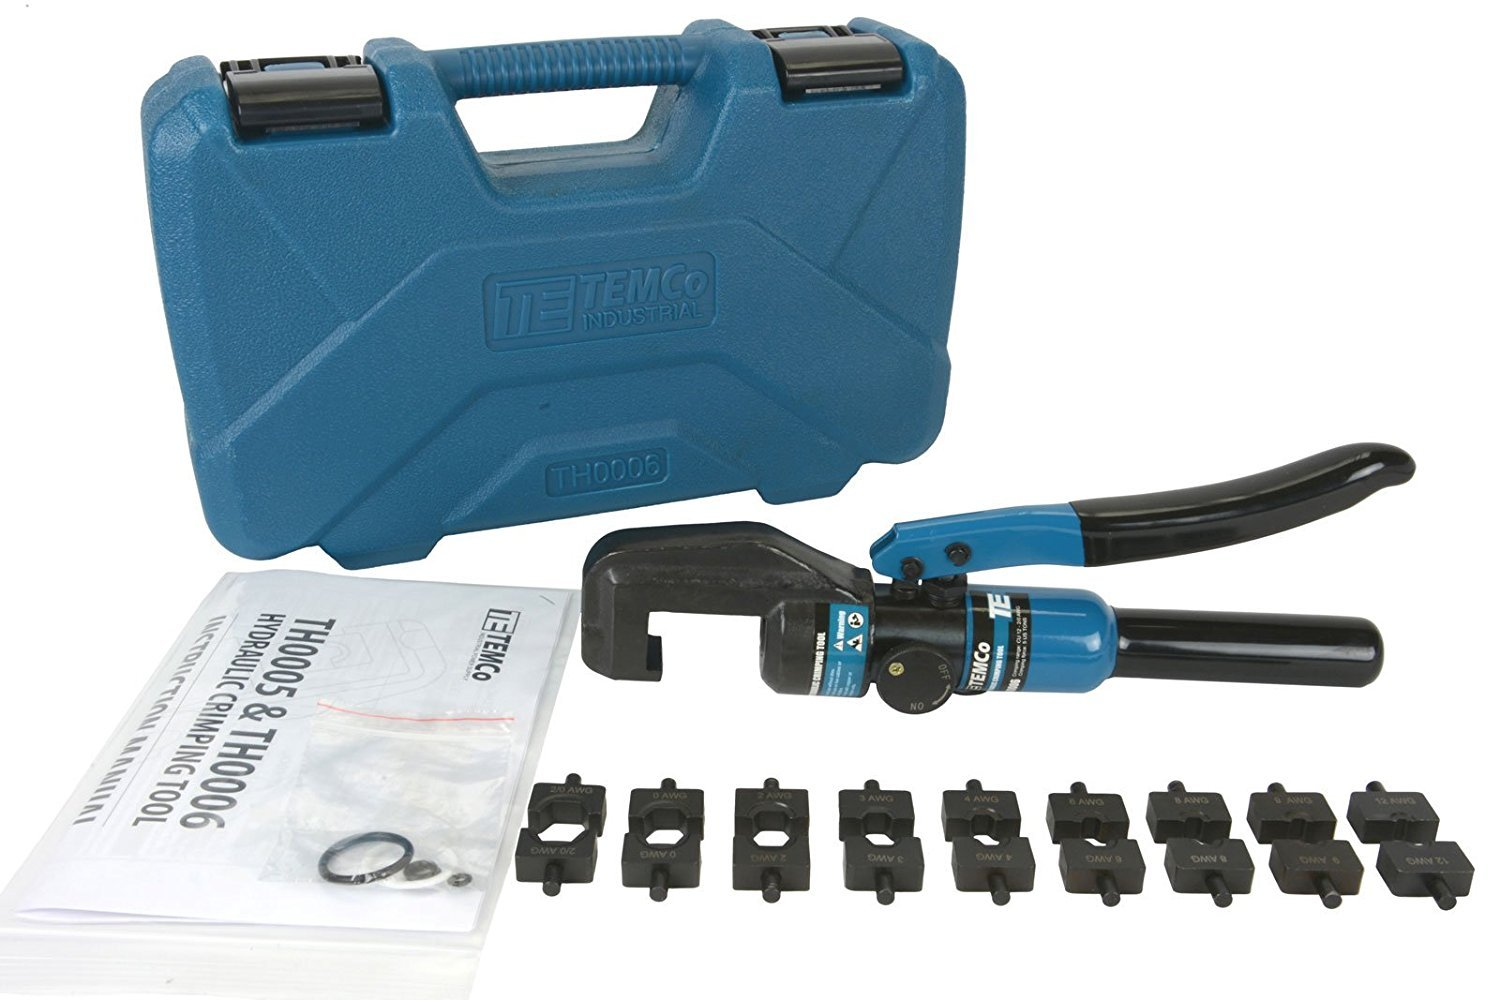 Temco Hydraulic Cable Lug Crimper TH0006-5 US TON 12 AWG to 00 (2/0 ...